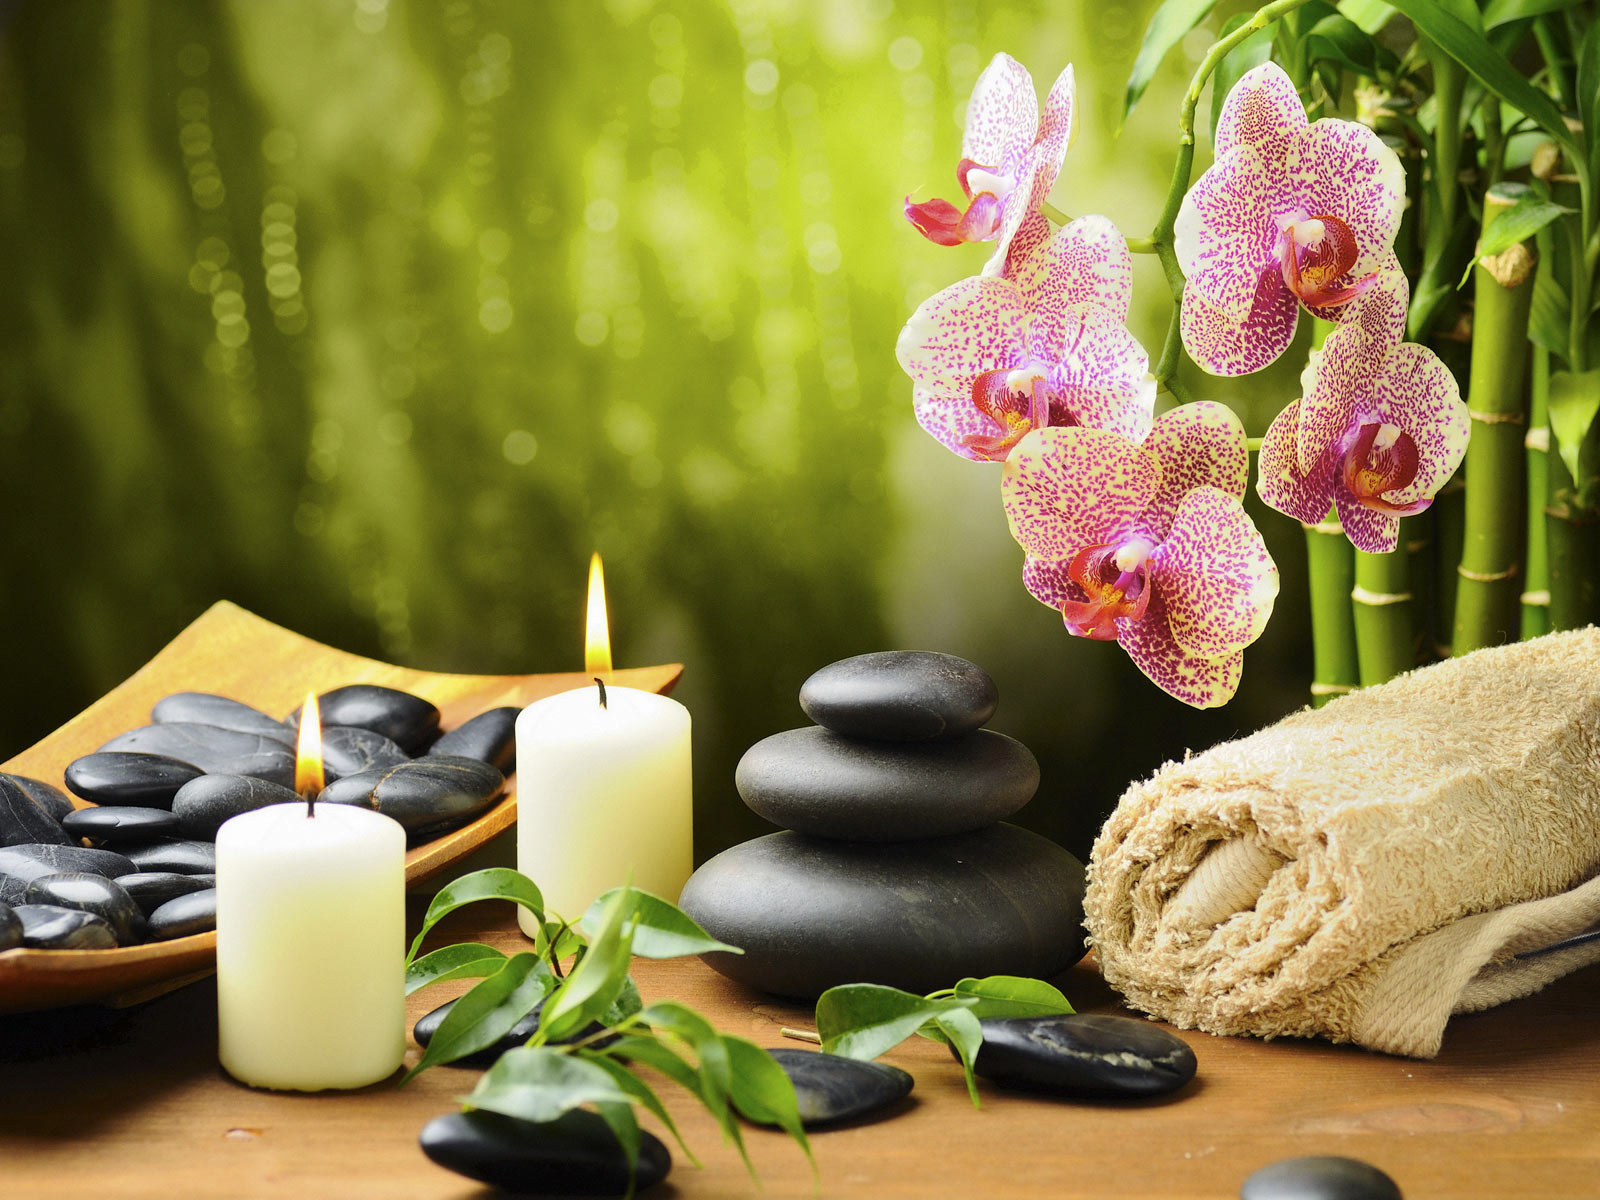 Canddles and stones